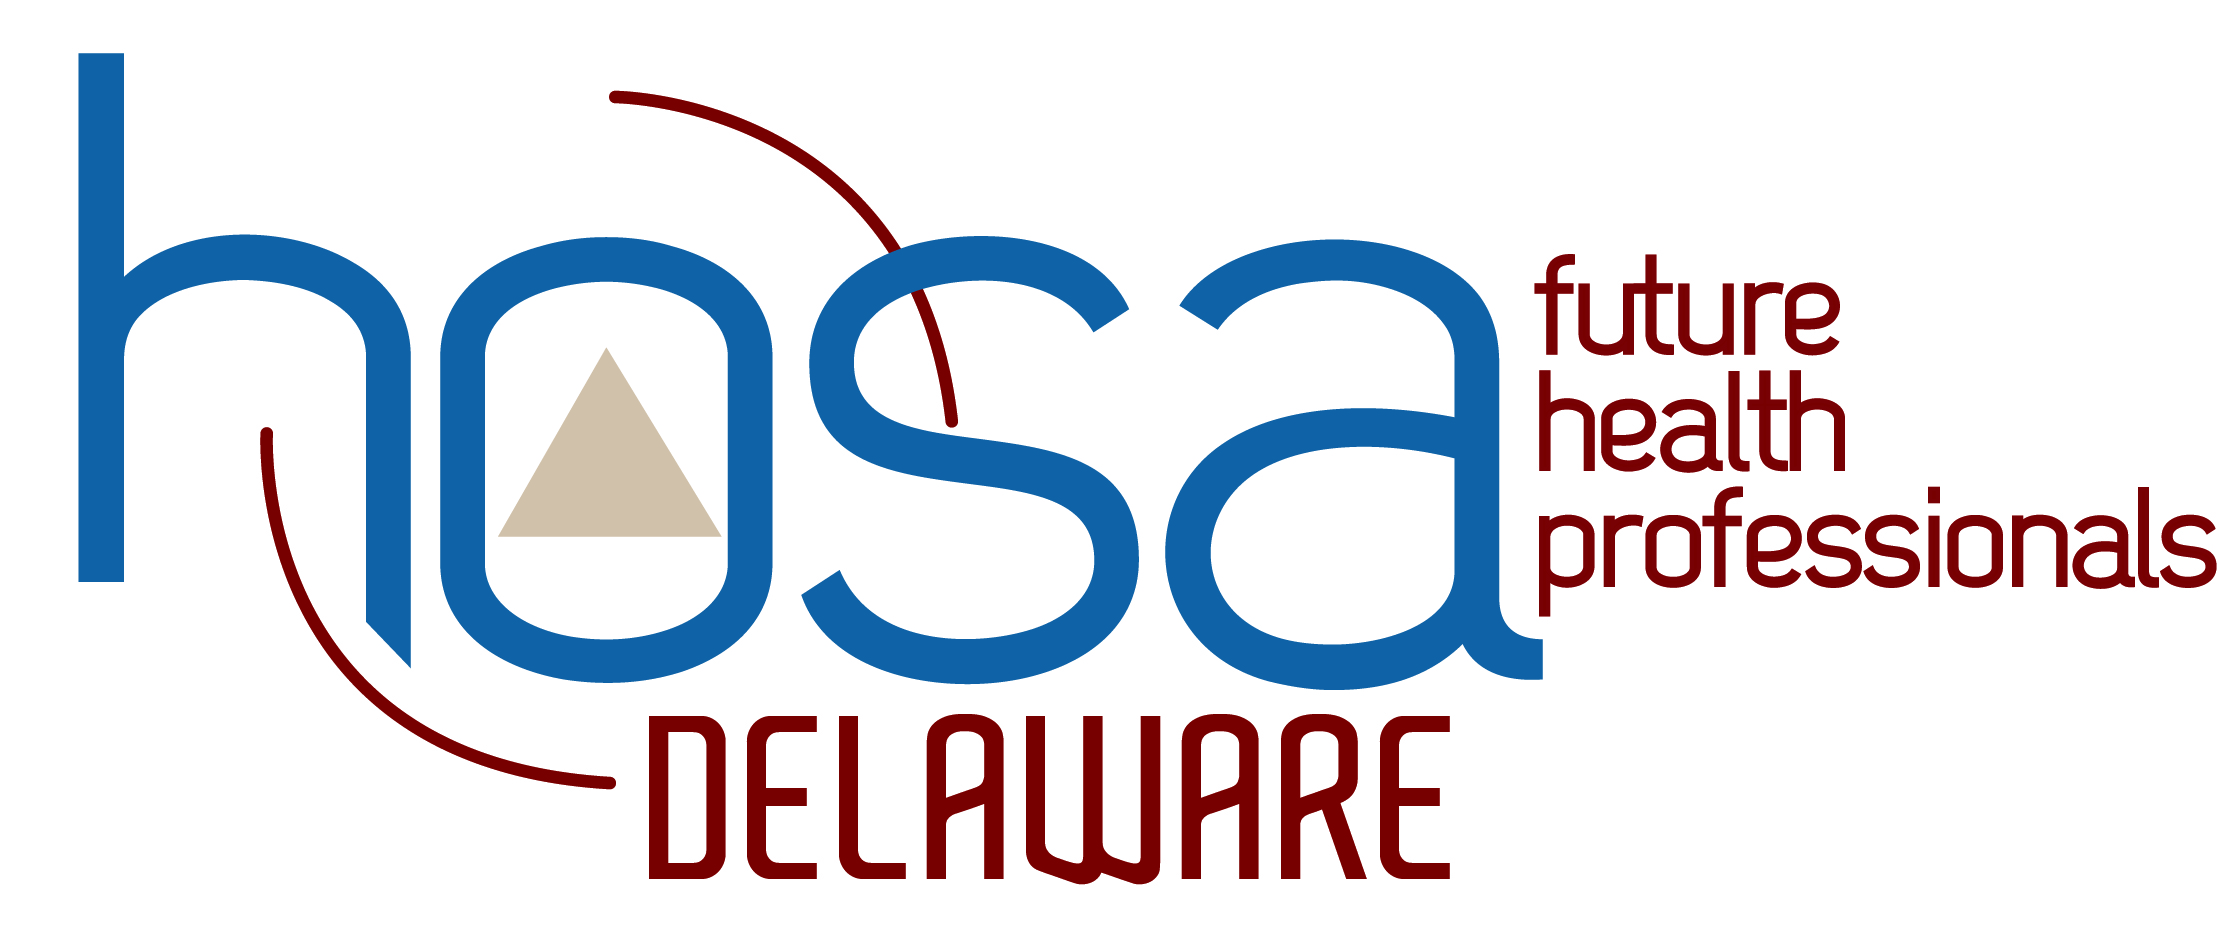 About us delaware hosa logo 1betcityfo Choice Image